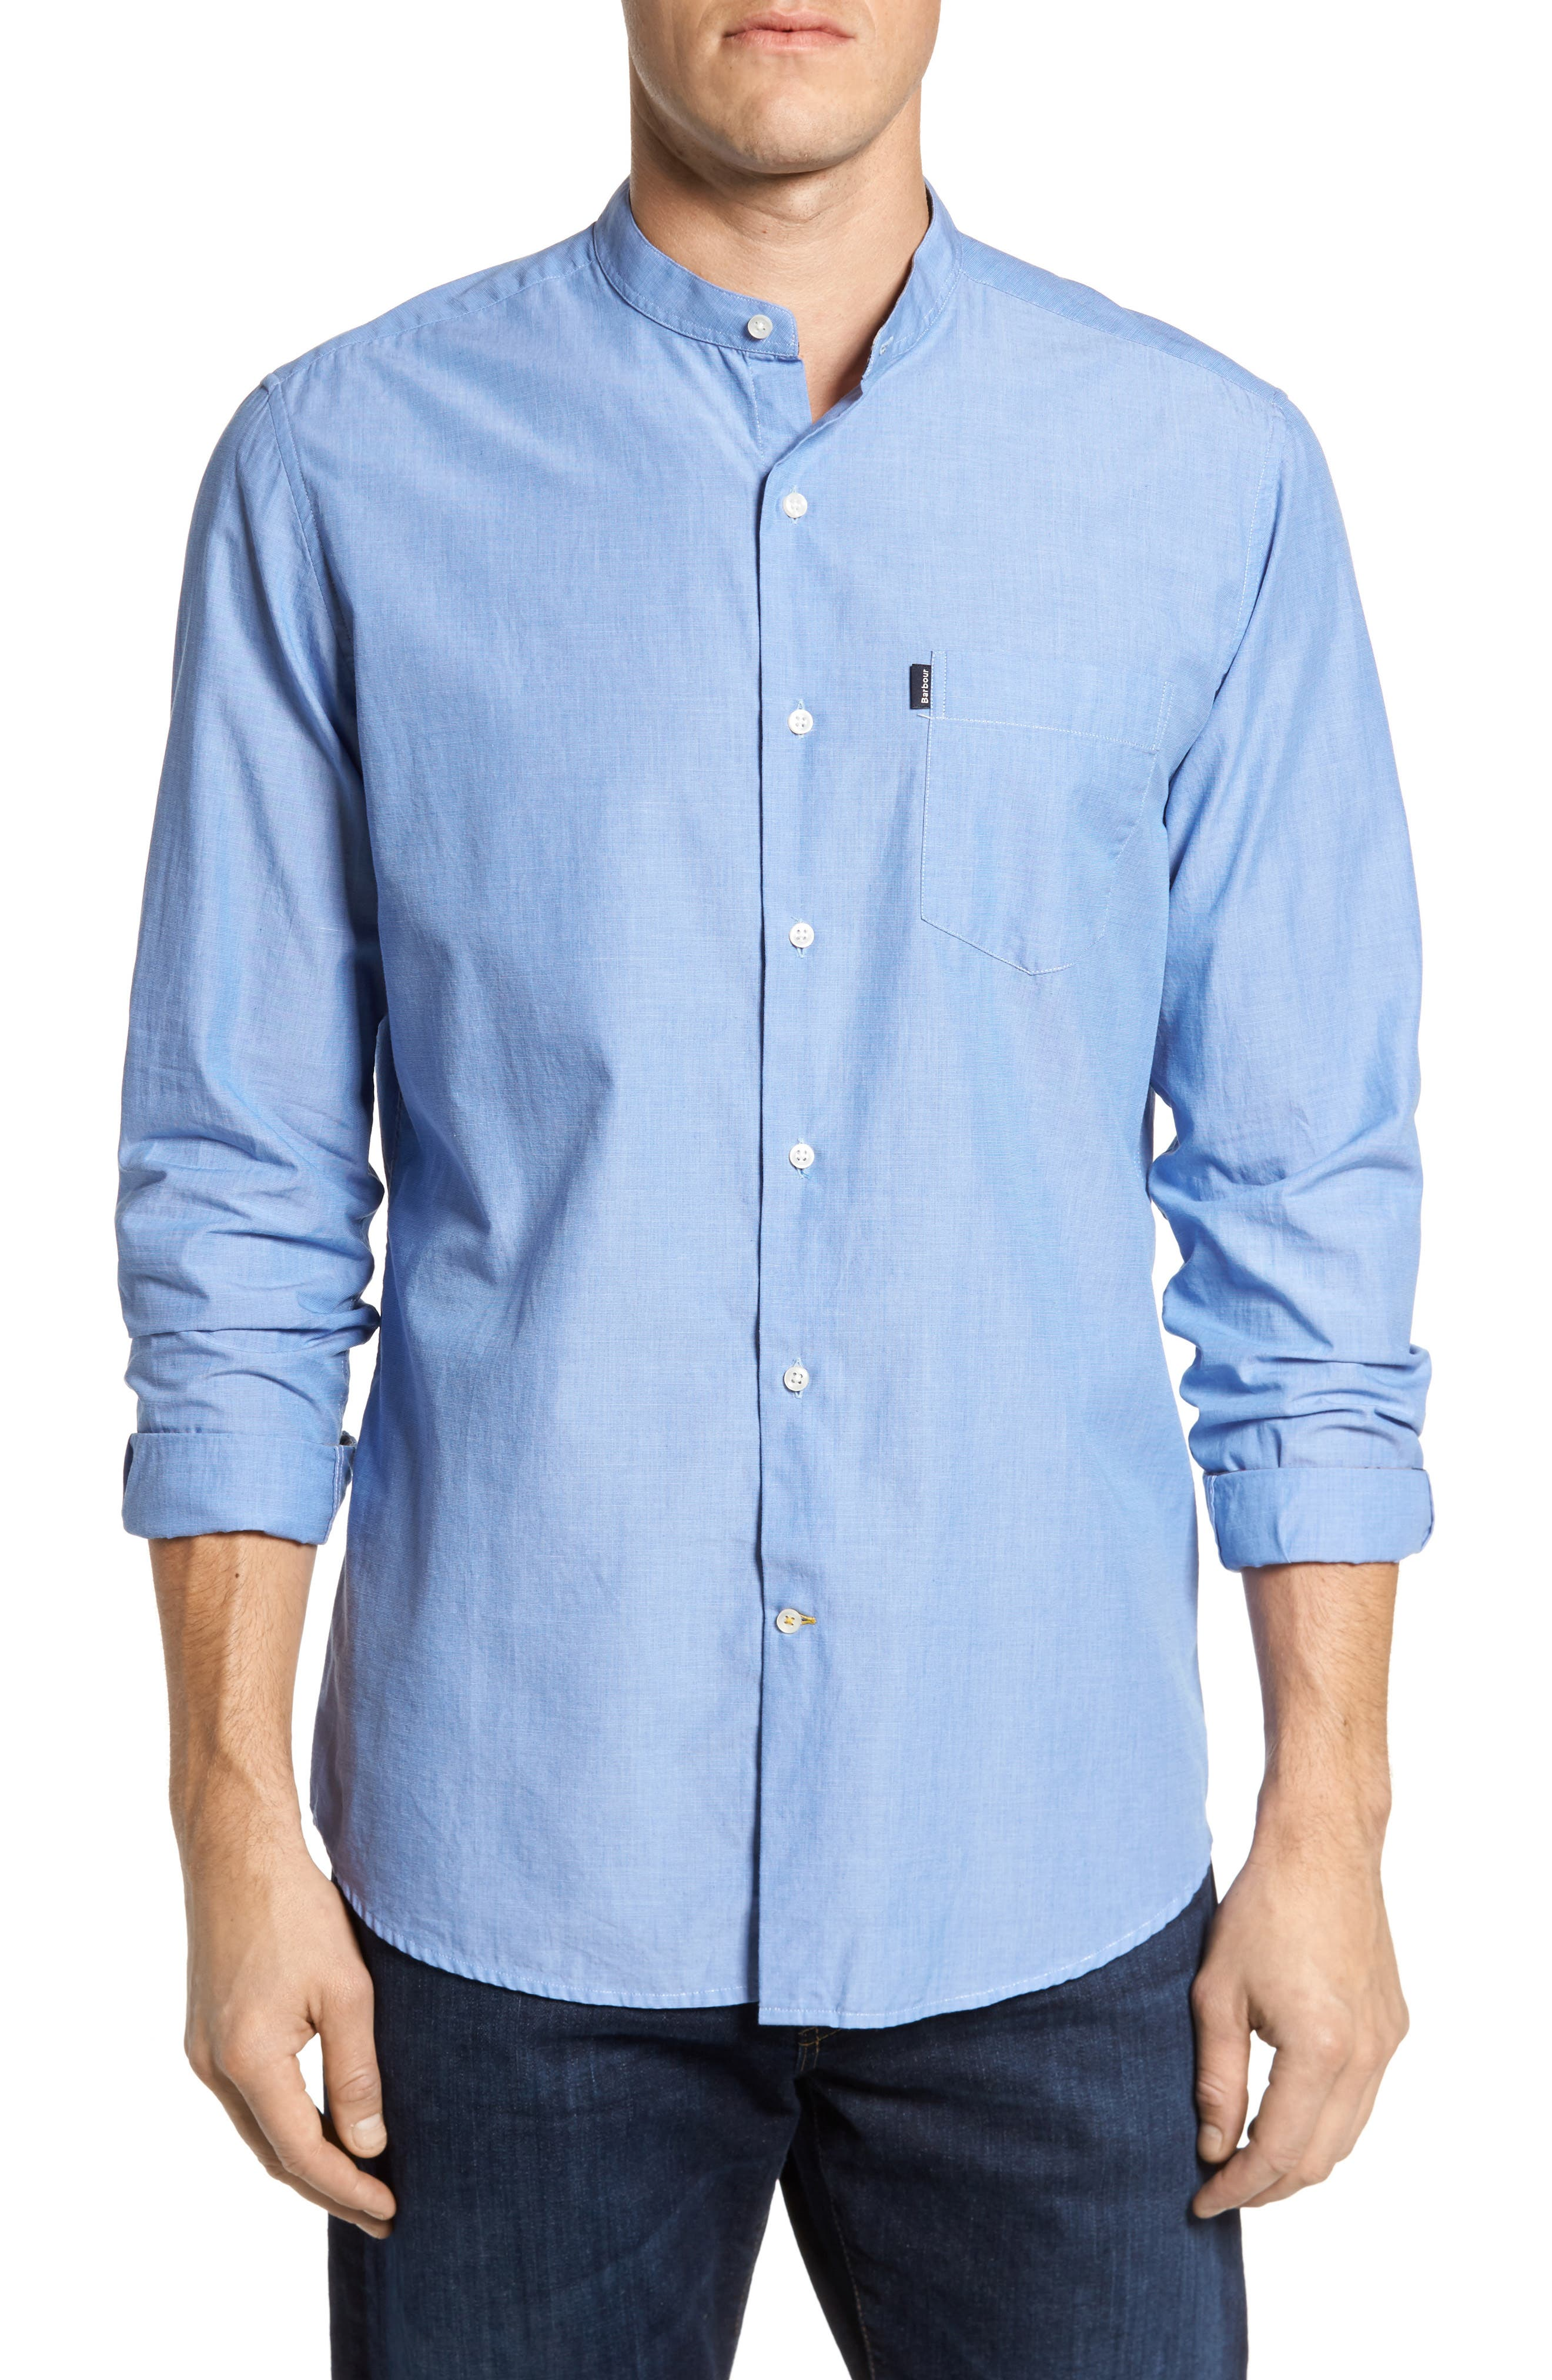 Fairfield Tailored Fit Sport Shirt,                         Main,                         color, Chambray